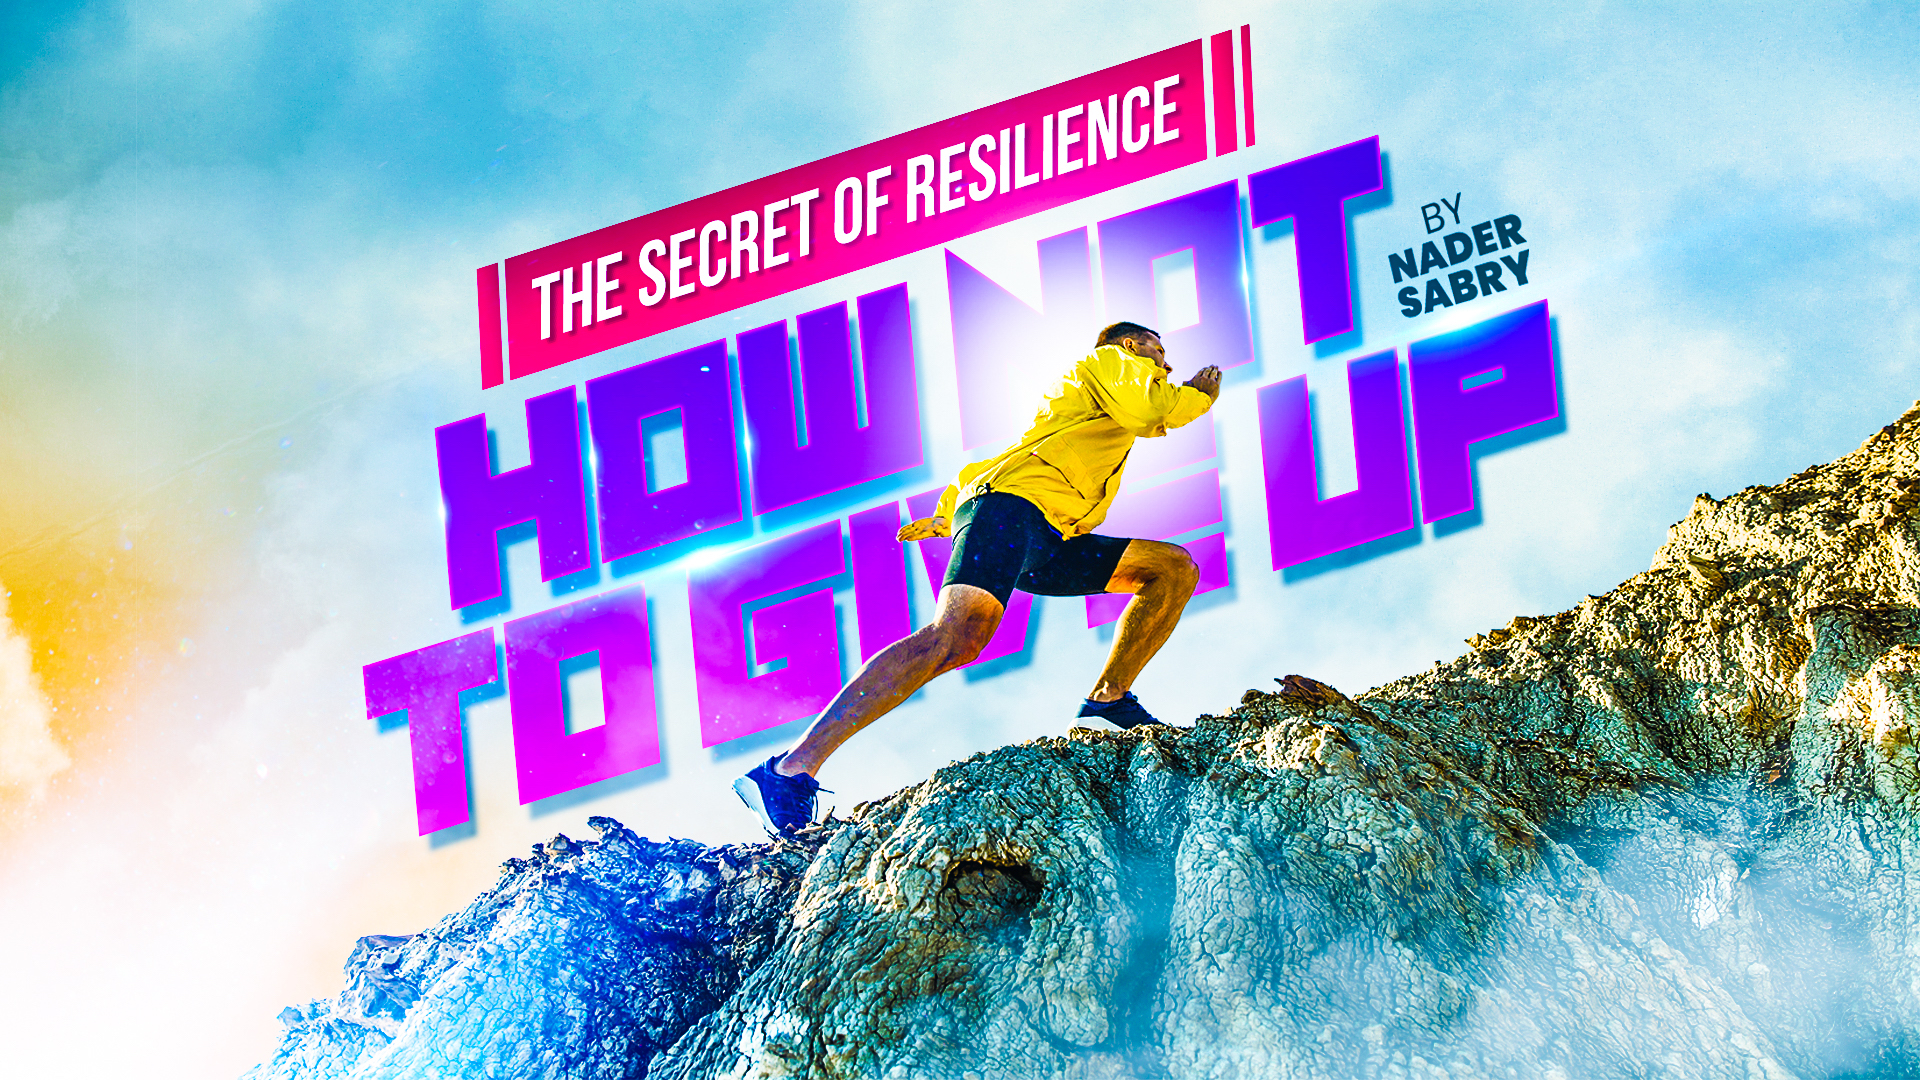 The Secret of Resilience